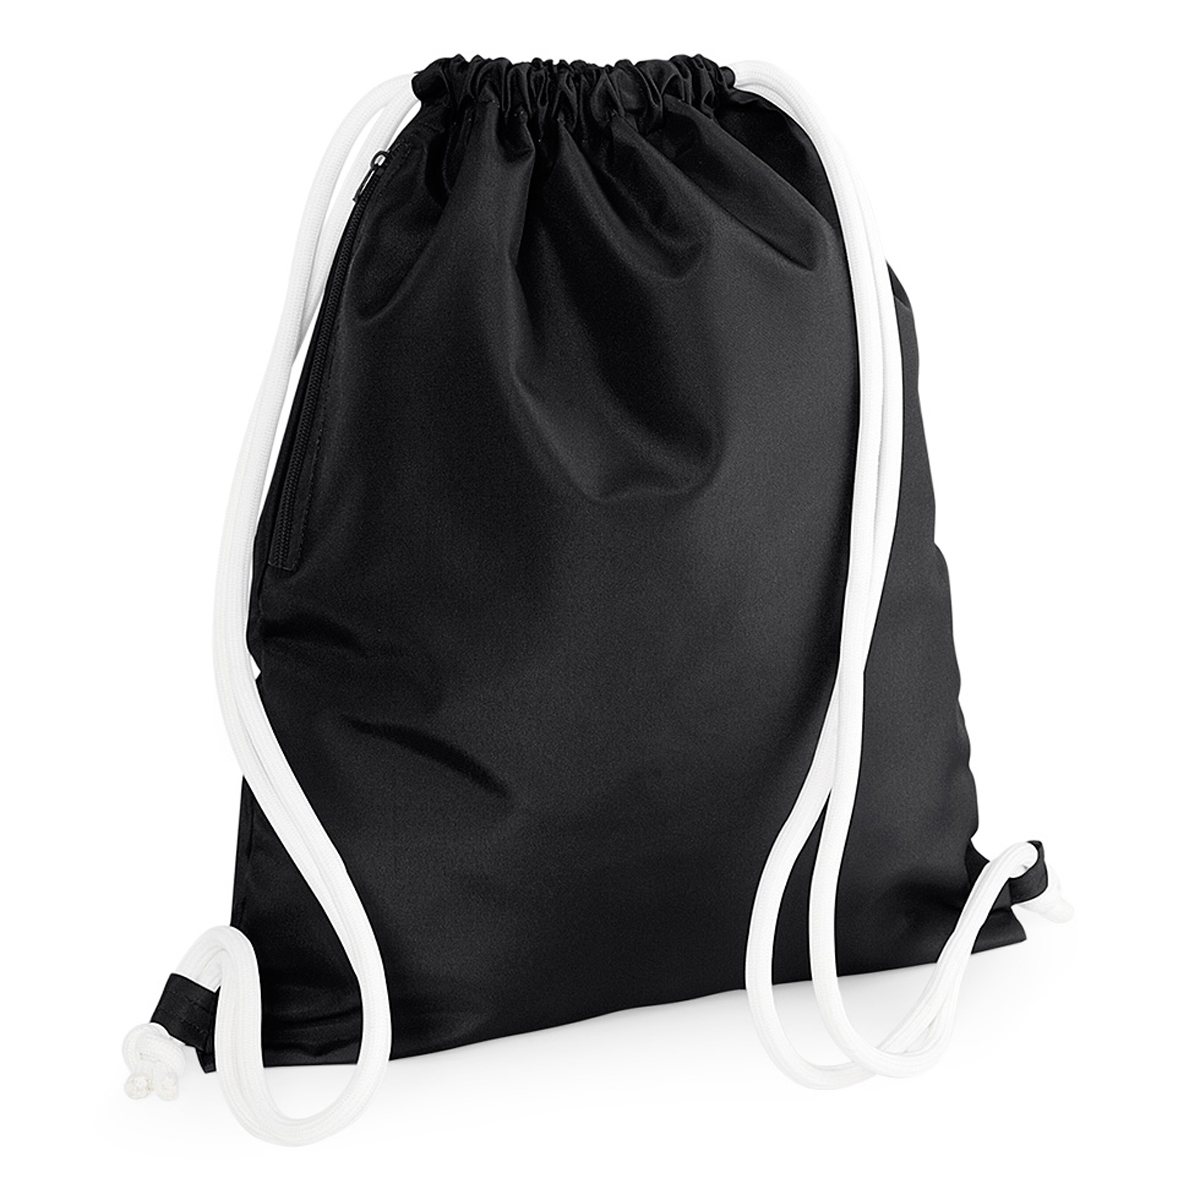 BagBase-Zaino-Sacca-a-Spalla-per-Palestra-Icon-drawstring-backpack-40x48cm-15L